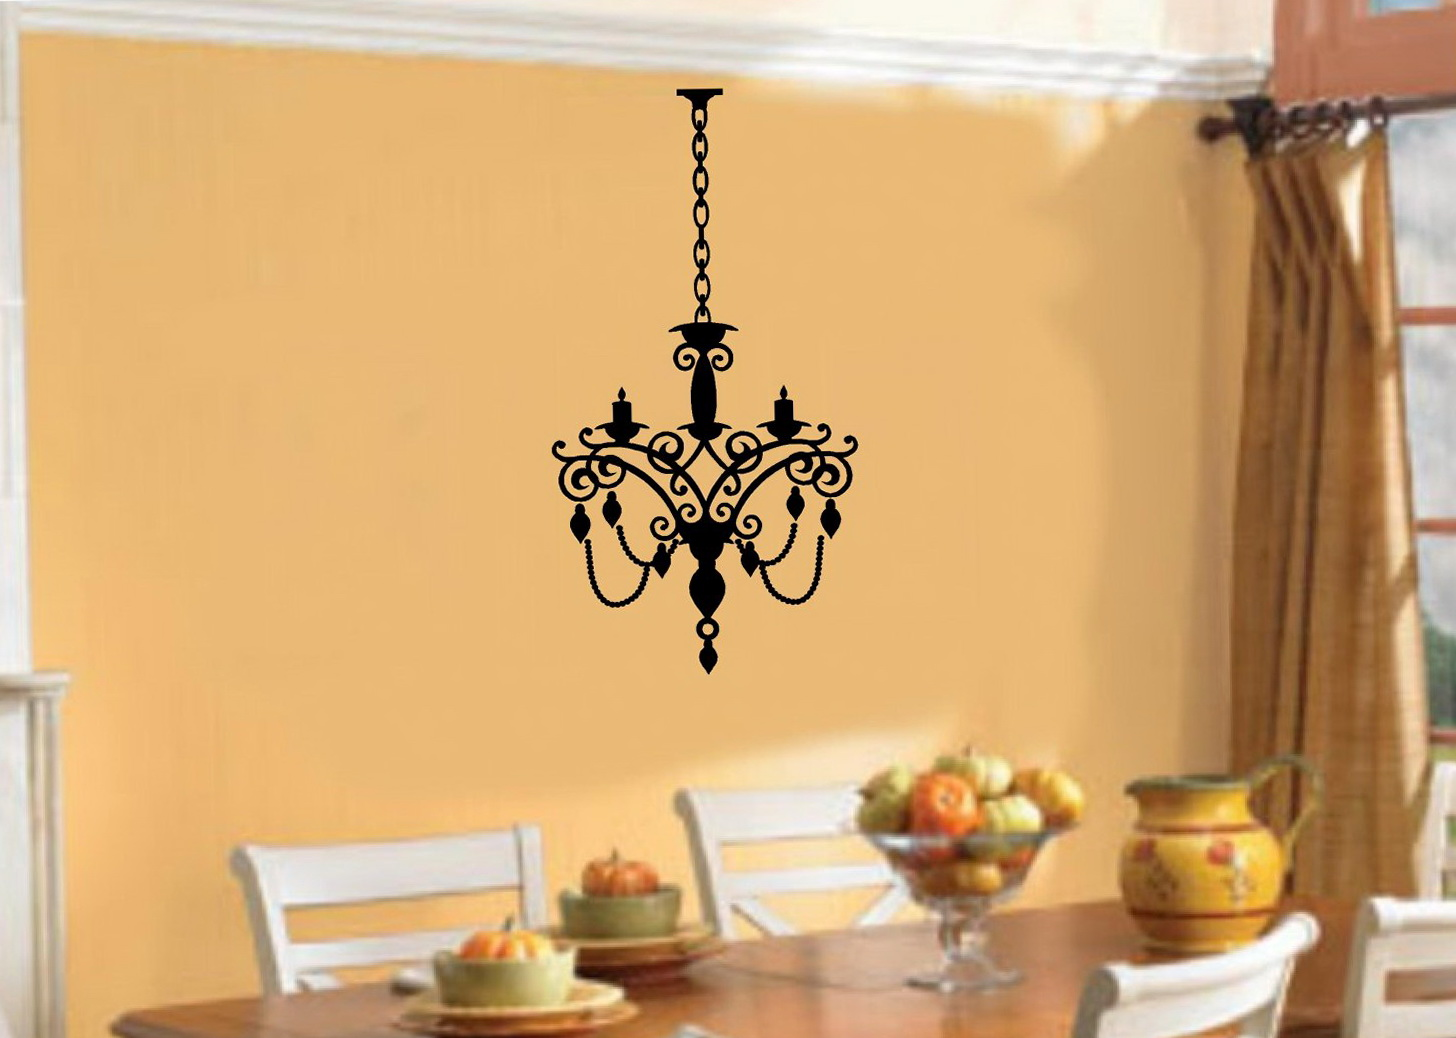 Lit Chandelier Wall Art